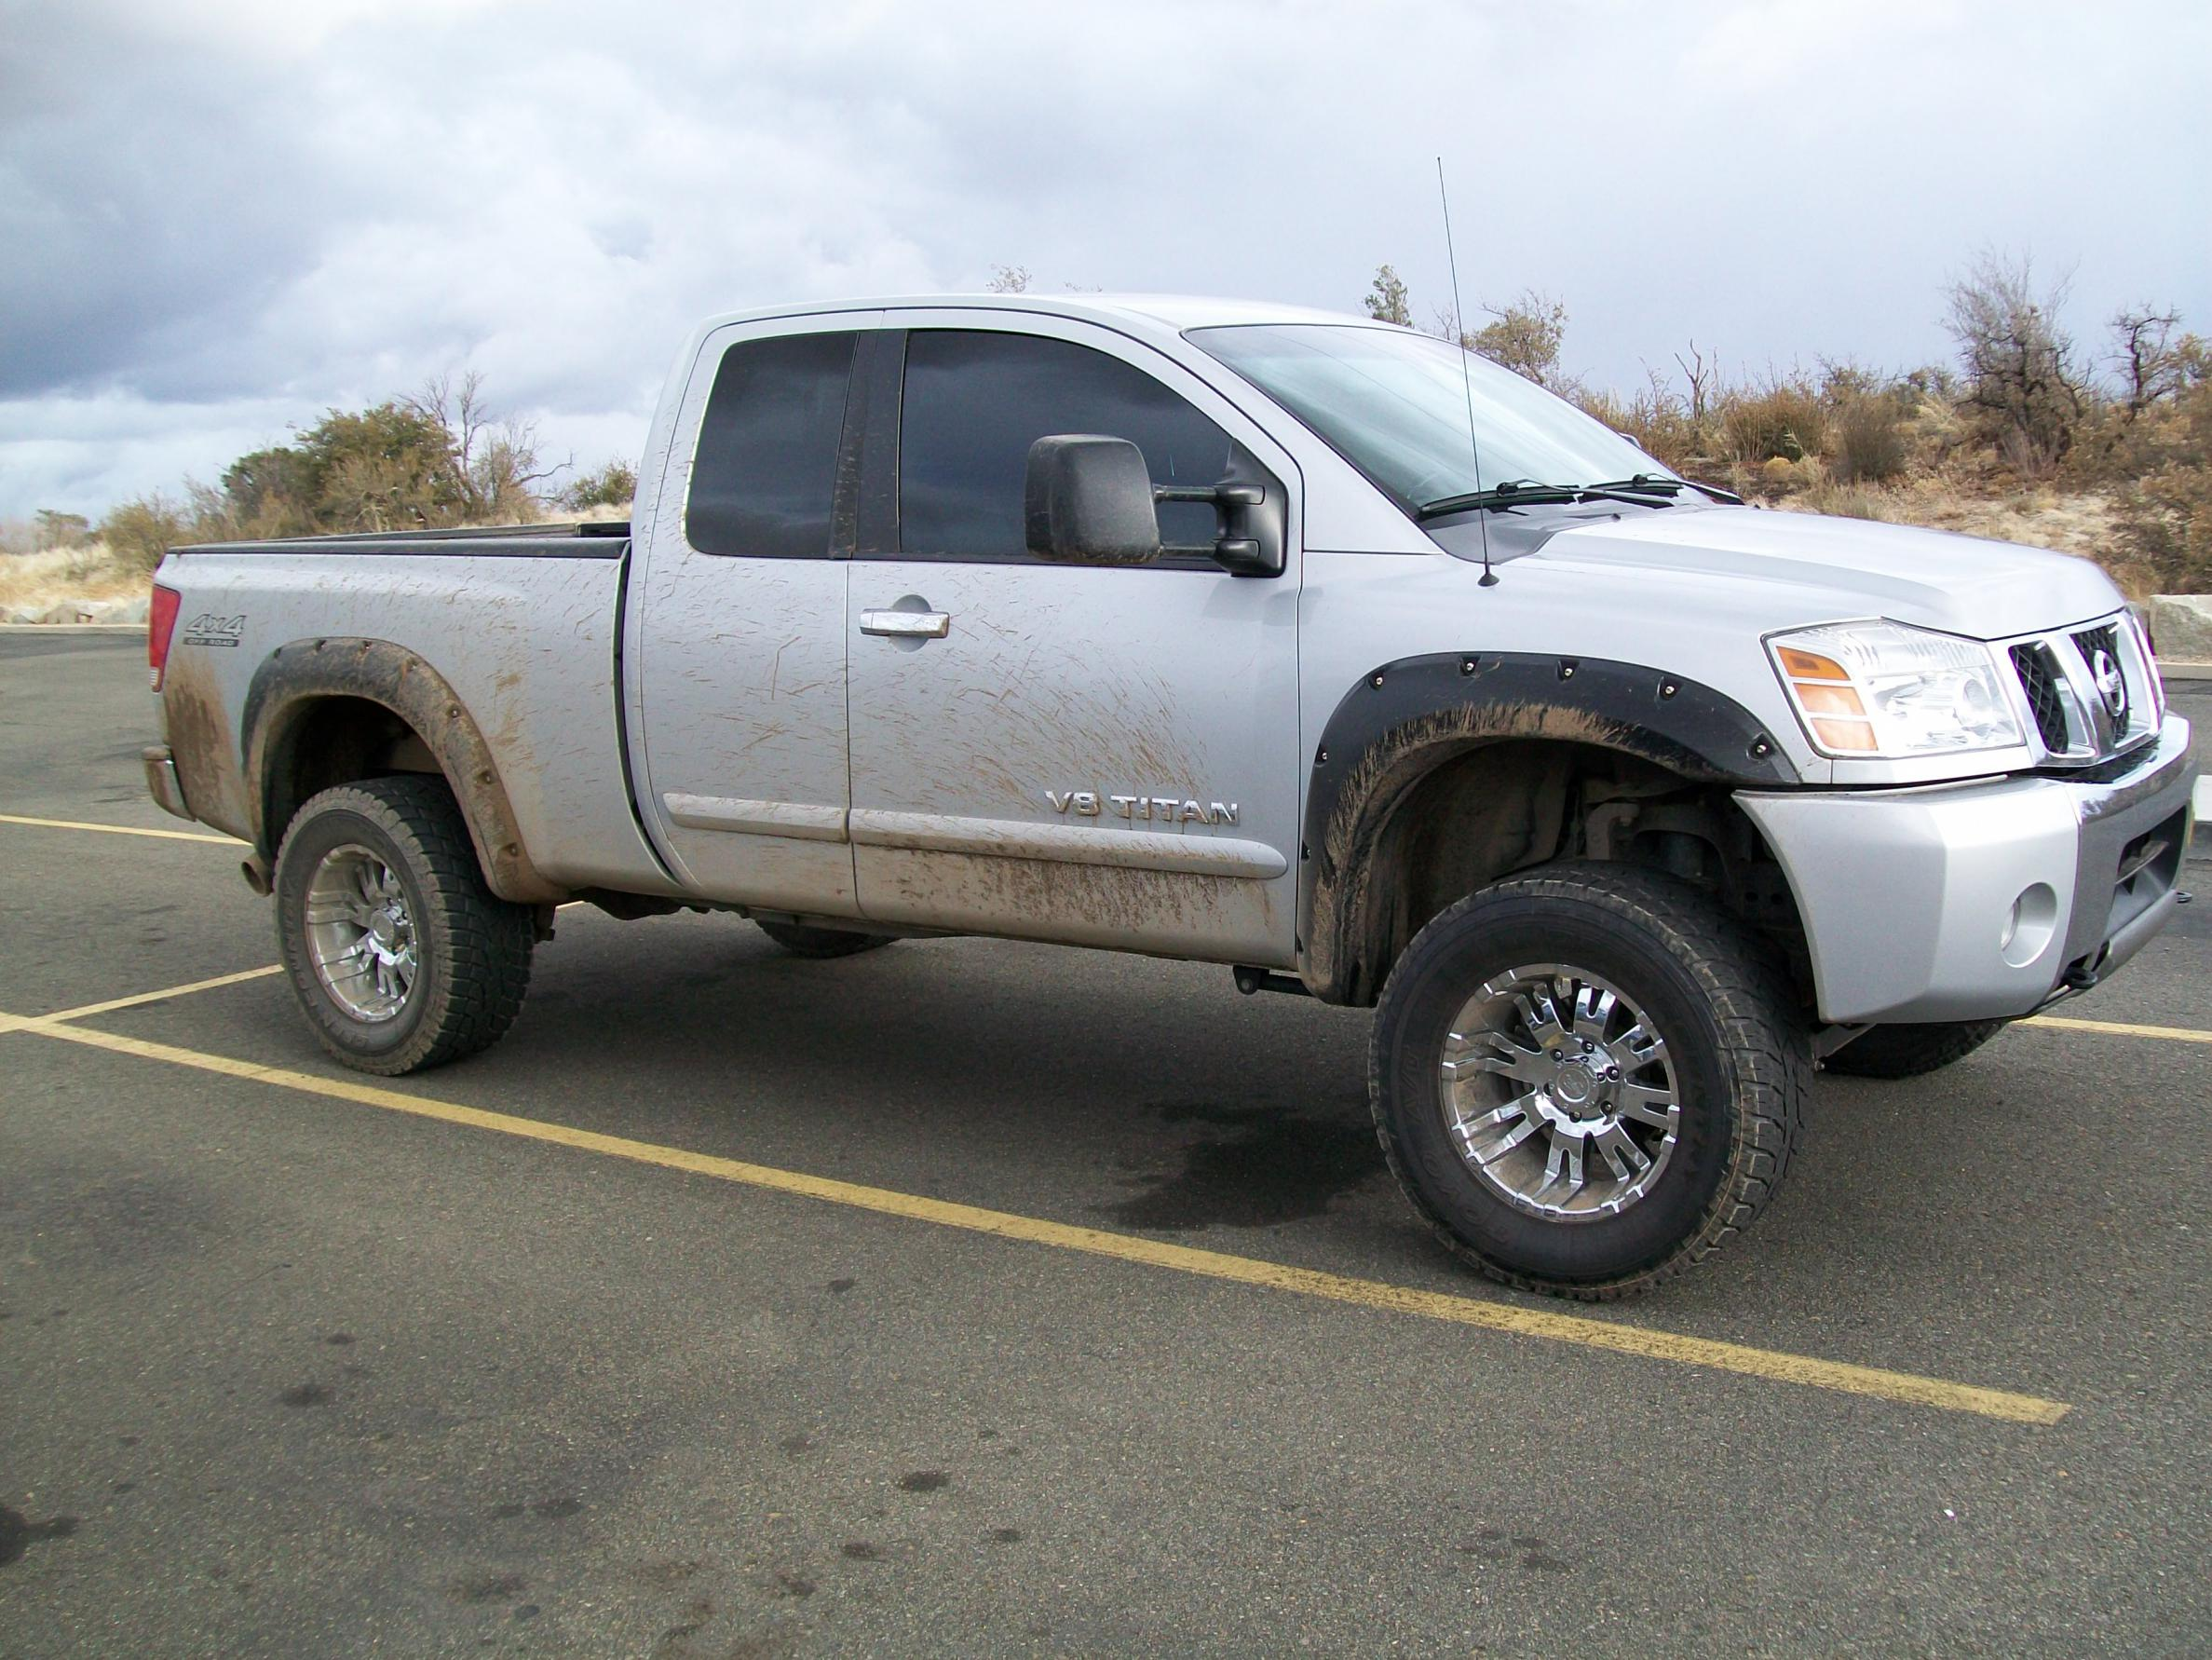 Bushwacker Fender Flare Pic Thread Titan